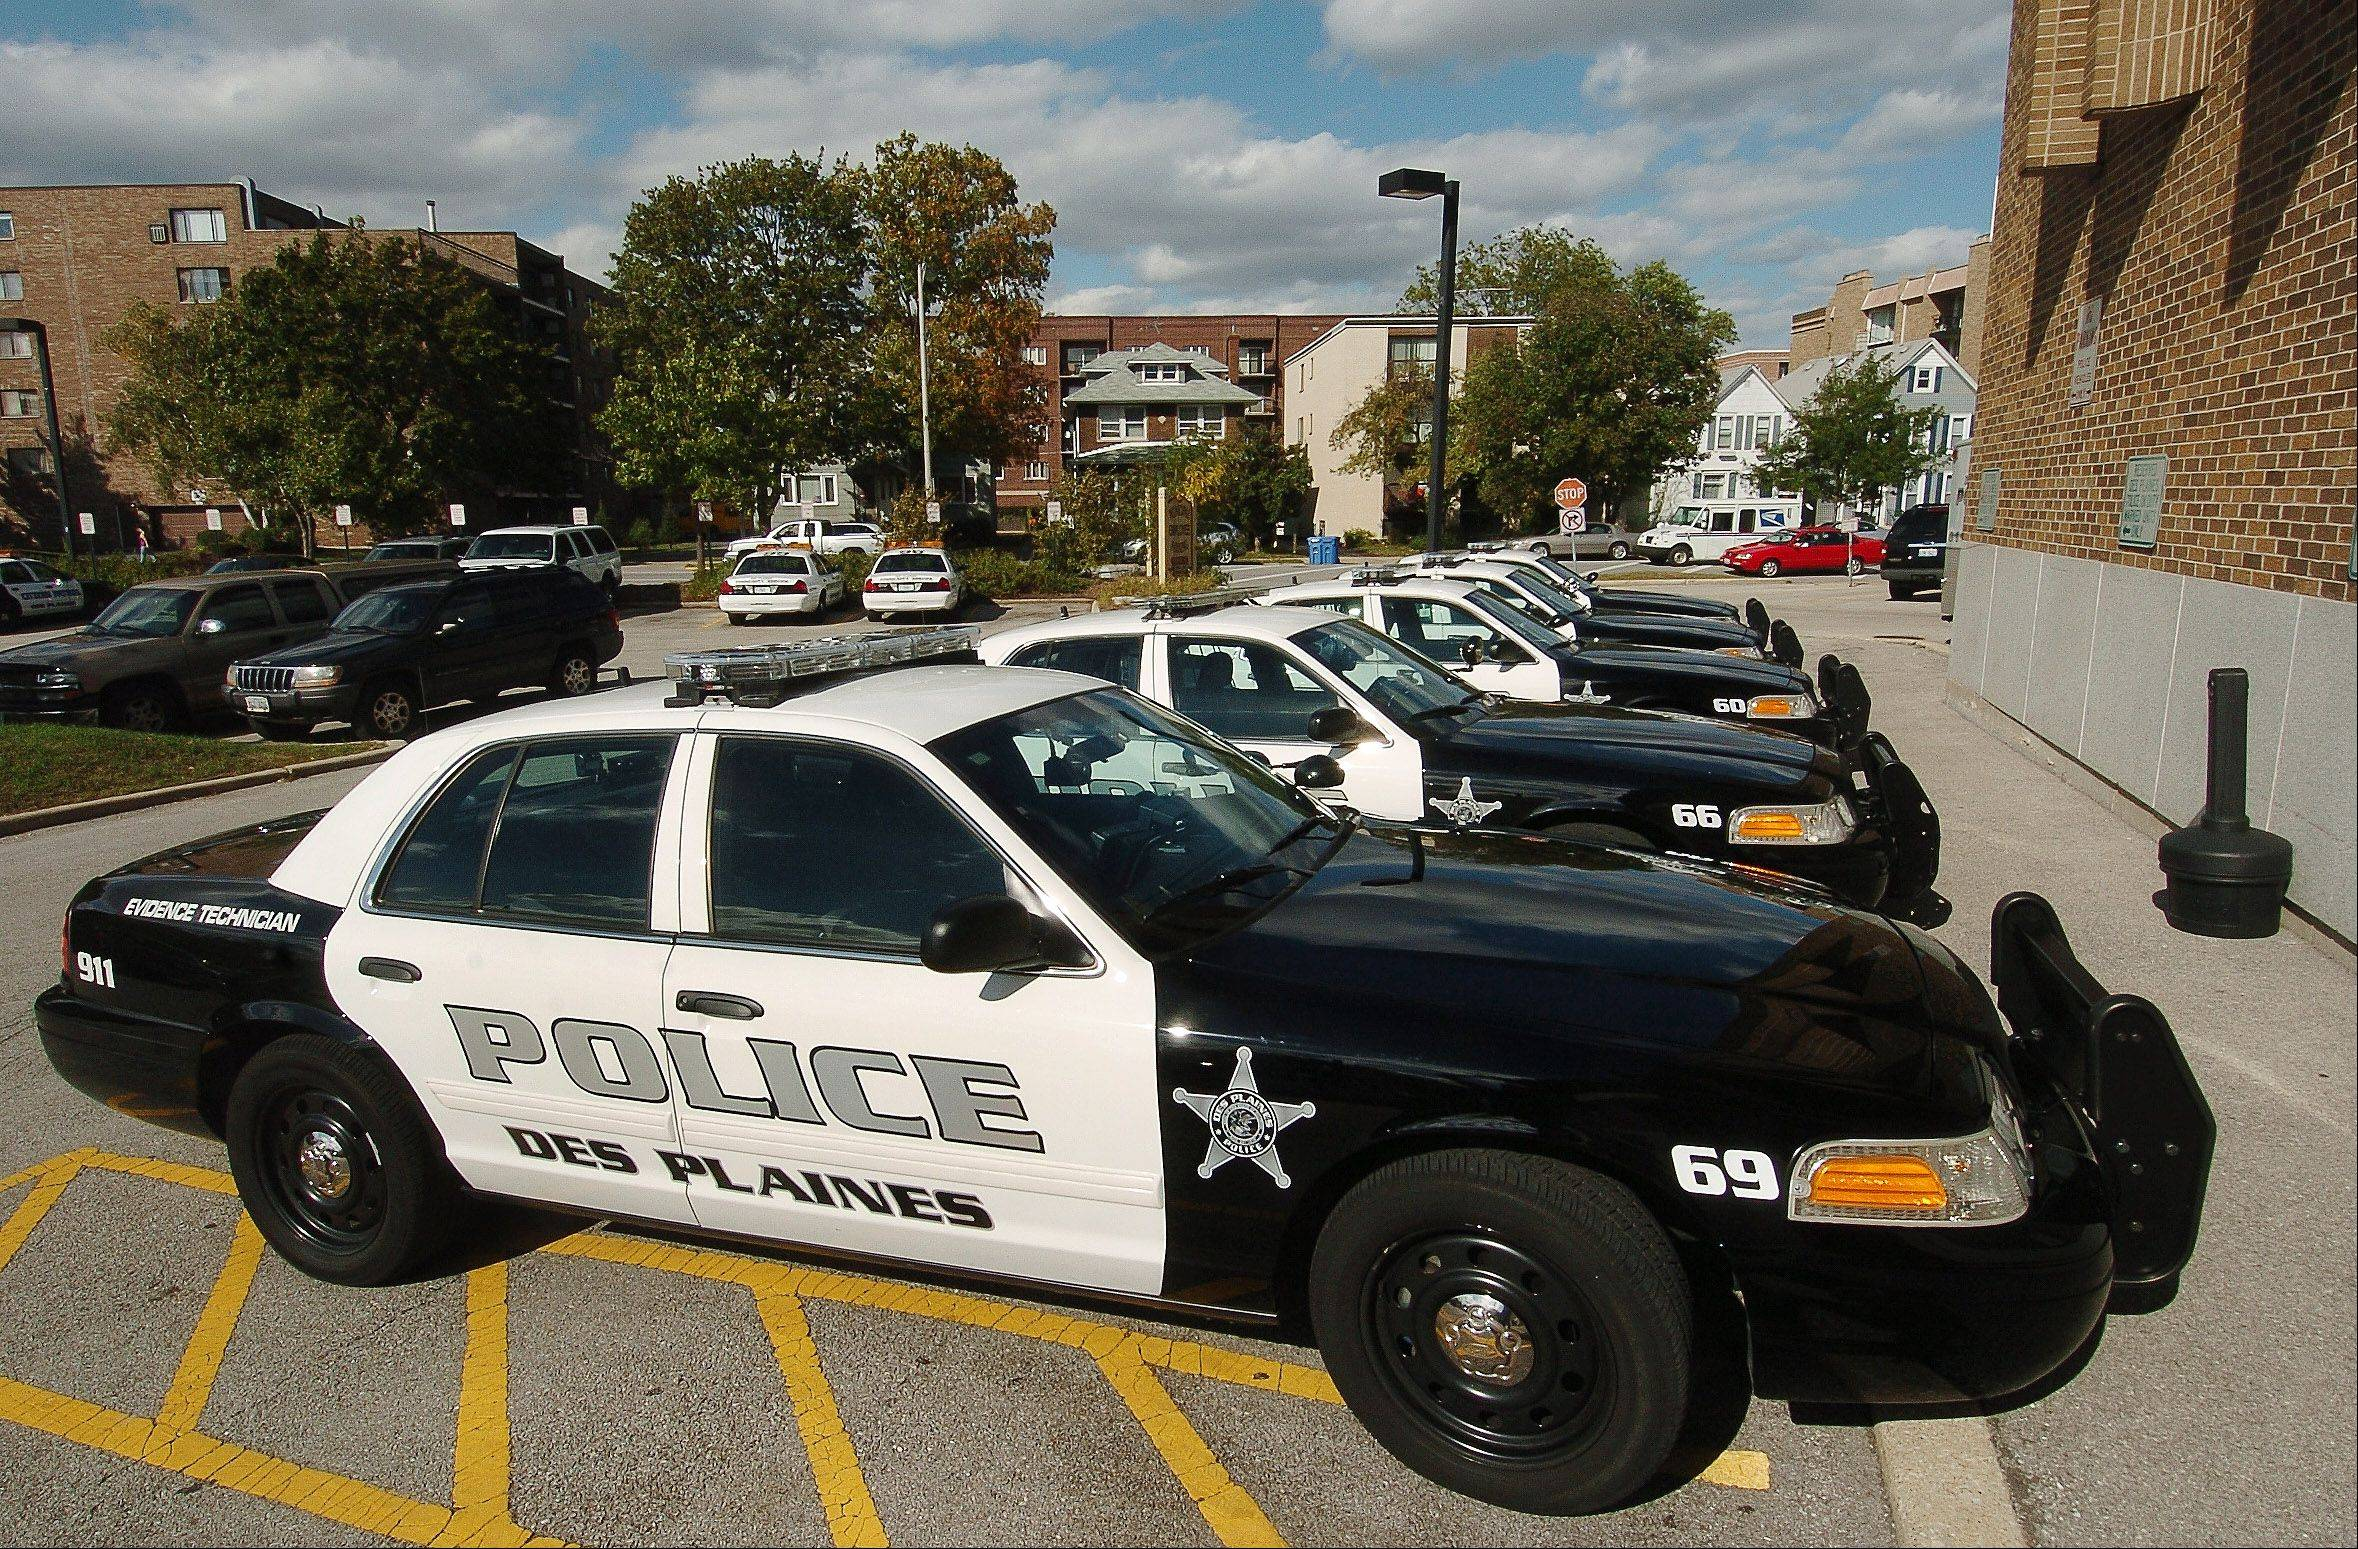 Several Des Plaines police officers are facing suspensions for violating department rules and policies related to �irregularities� with the reporting of hours. The city said it reported the problems itself to authorities after an officer reported them to management.